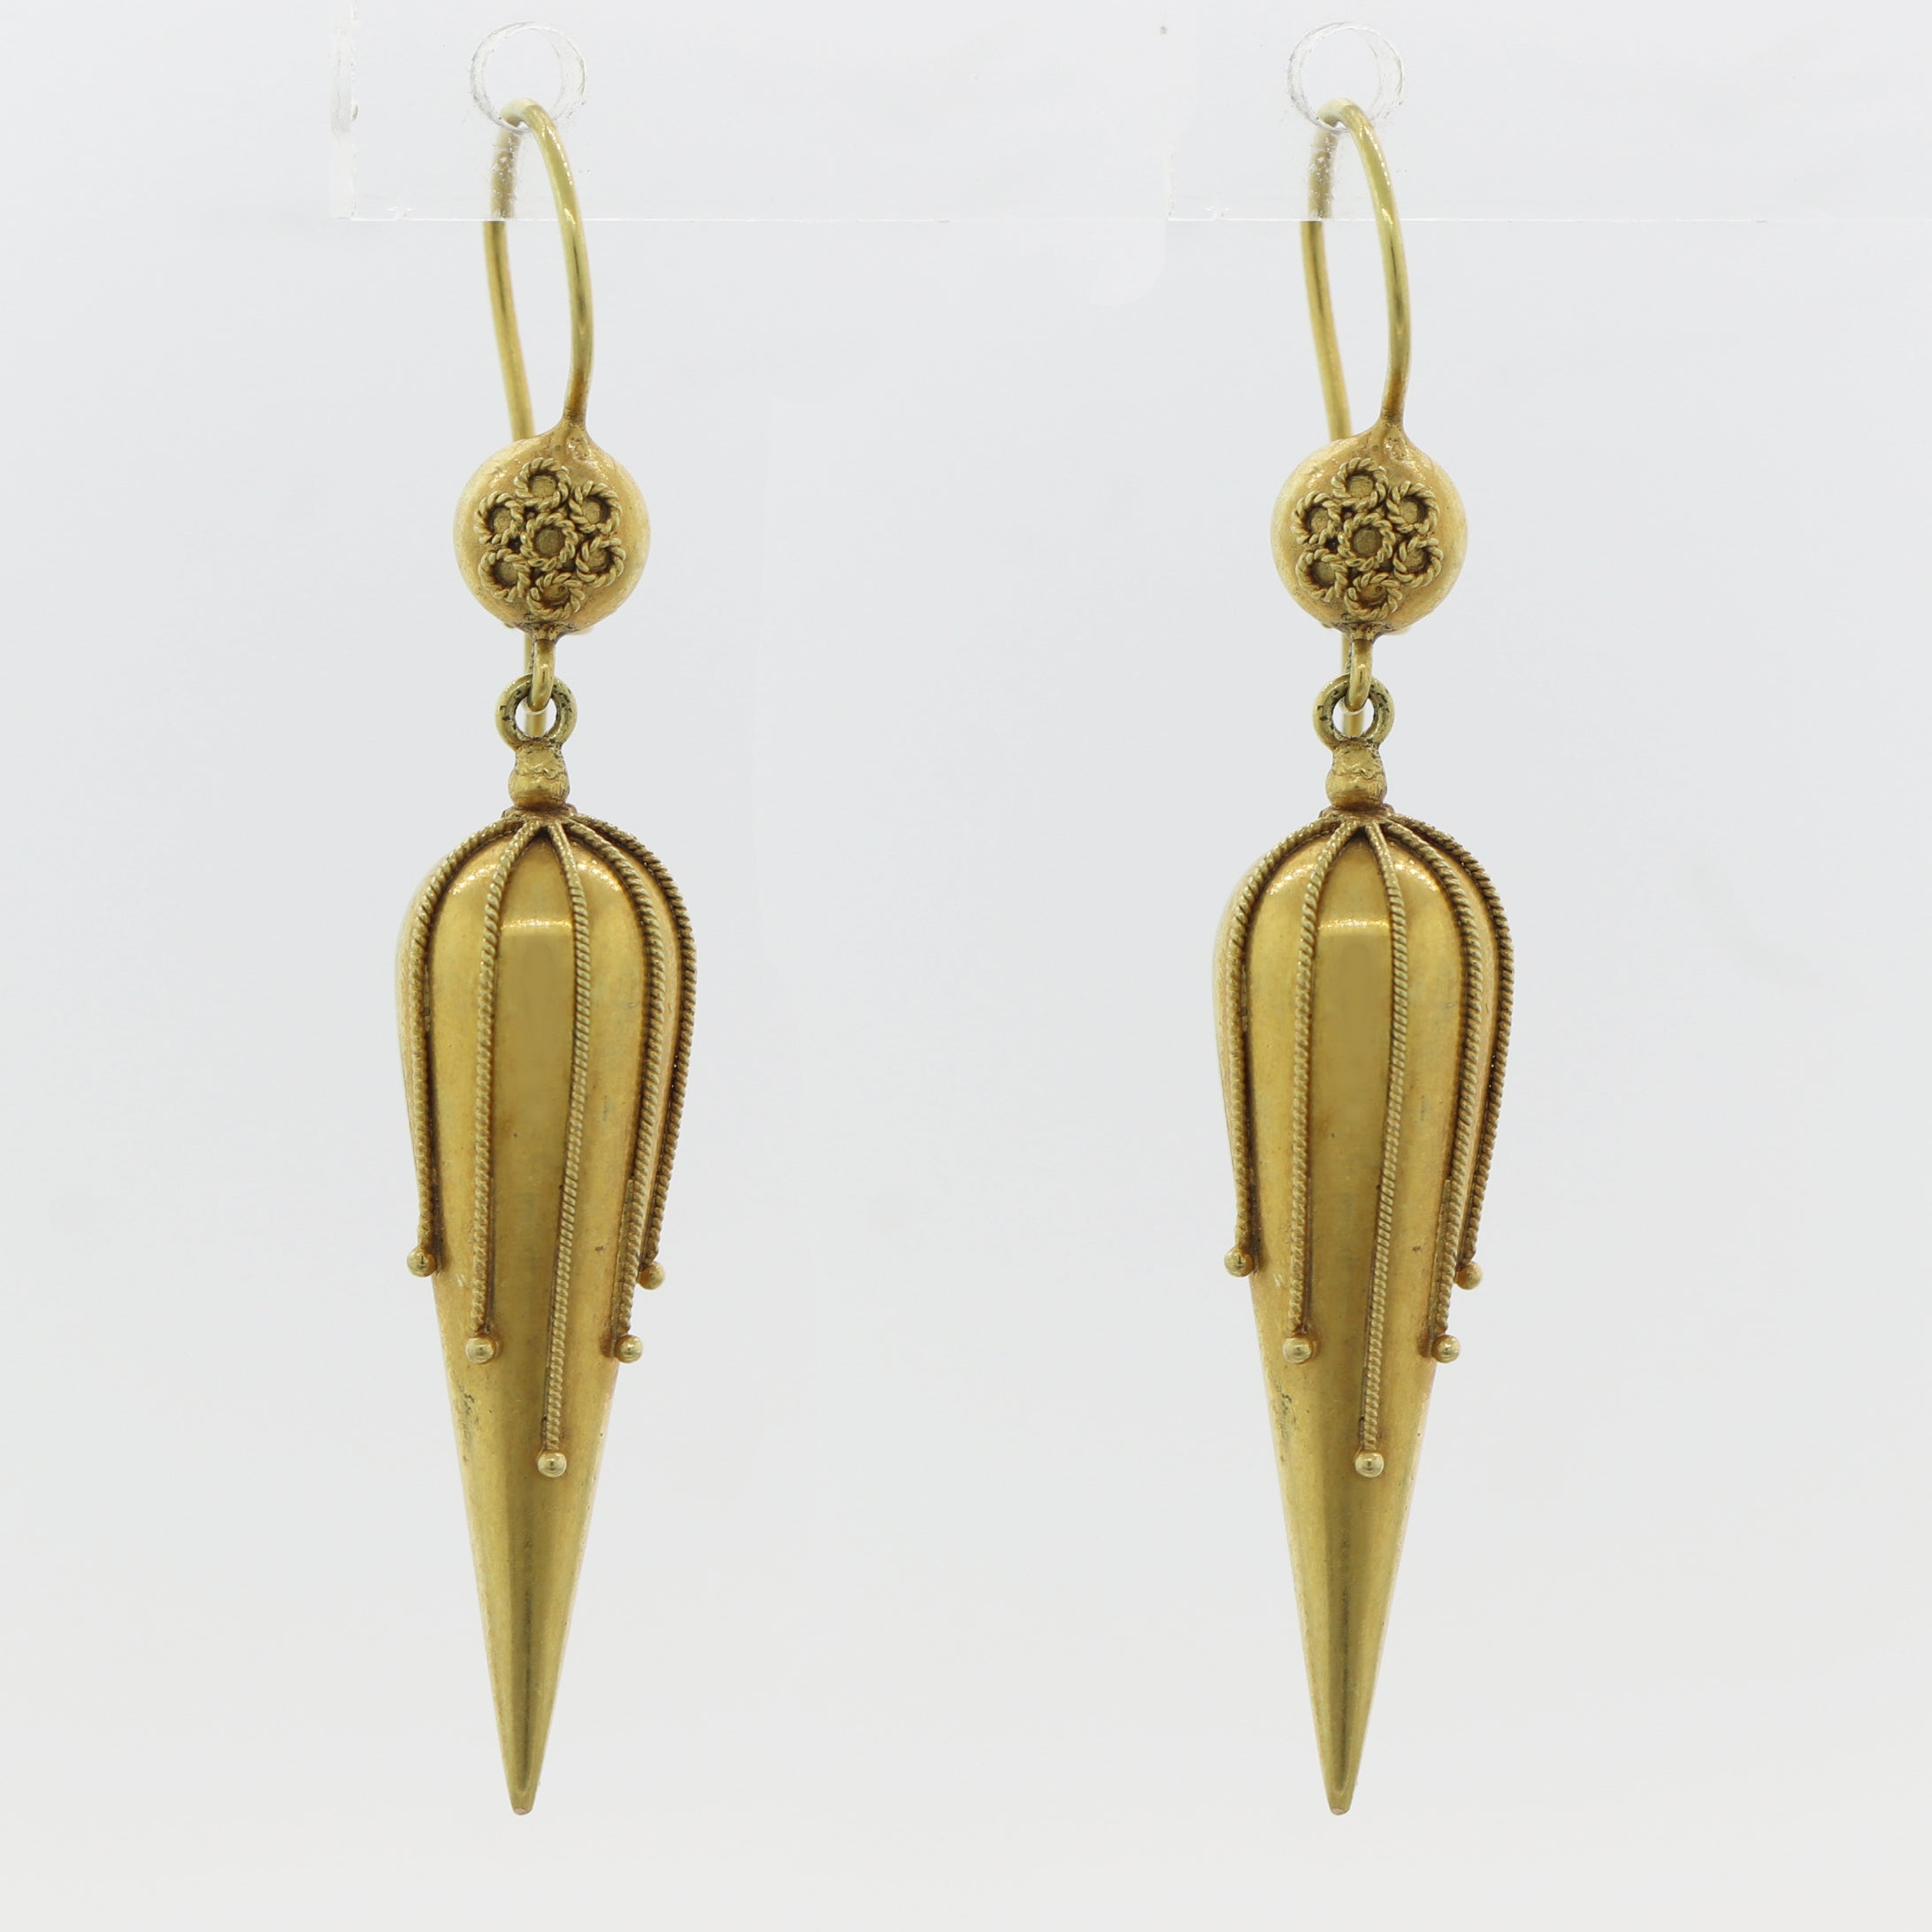 1860's Antique Victorian 15ct Yellow Gold Etruscan Revival Drop Earrings